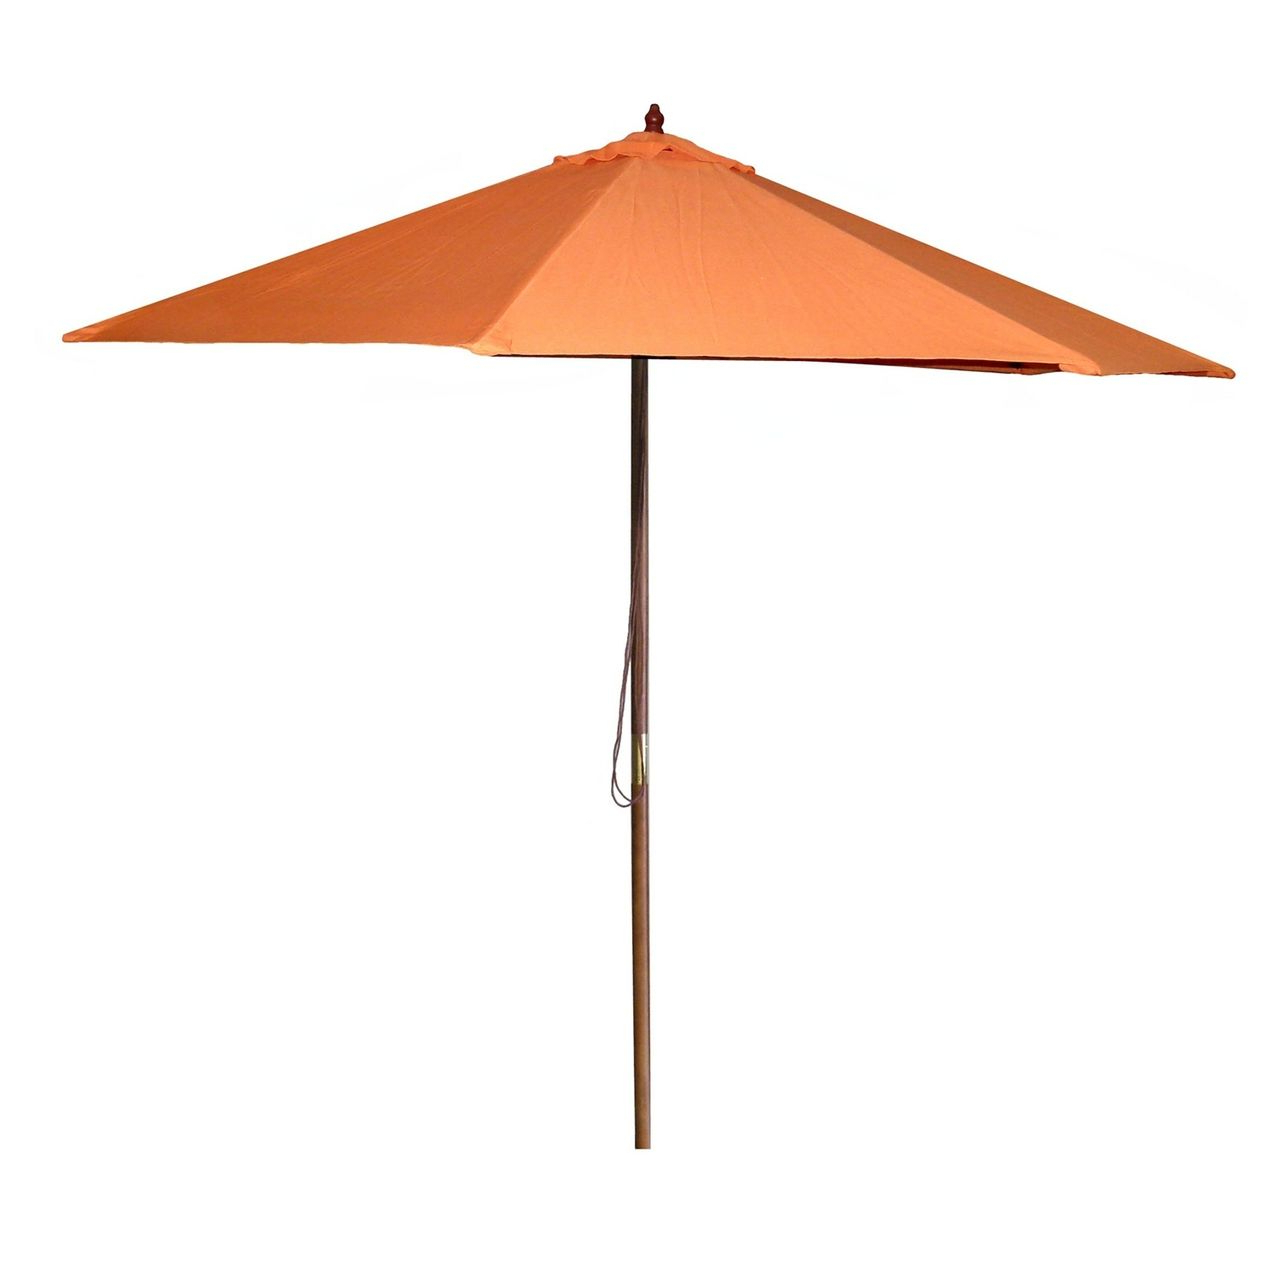 Most Recently Released 9 Ft Patio Pulley Umbrella With Wood Pole And Orange Canopy In Devansh Market Umbrellas (View 8 of 20)